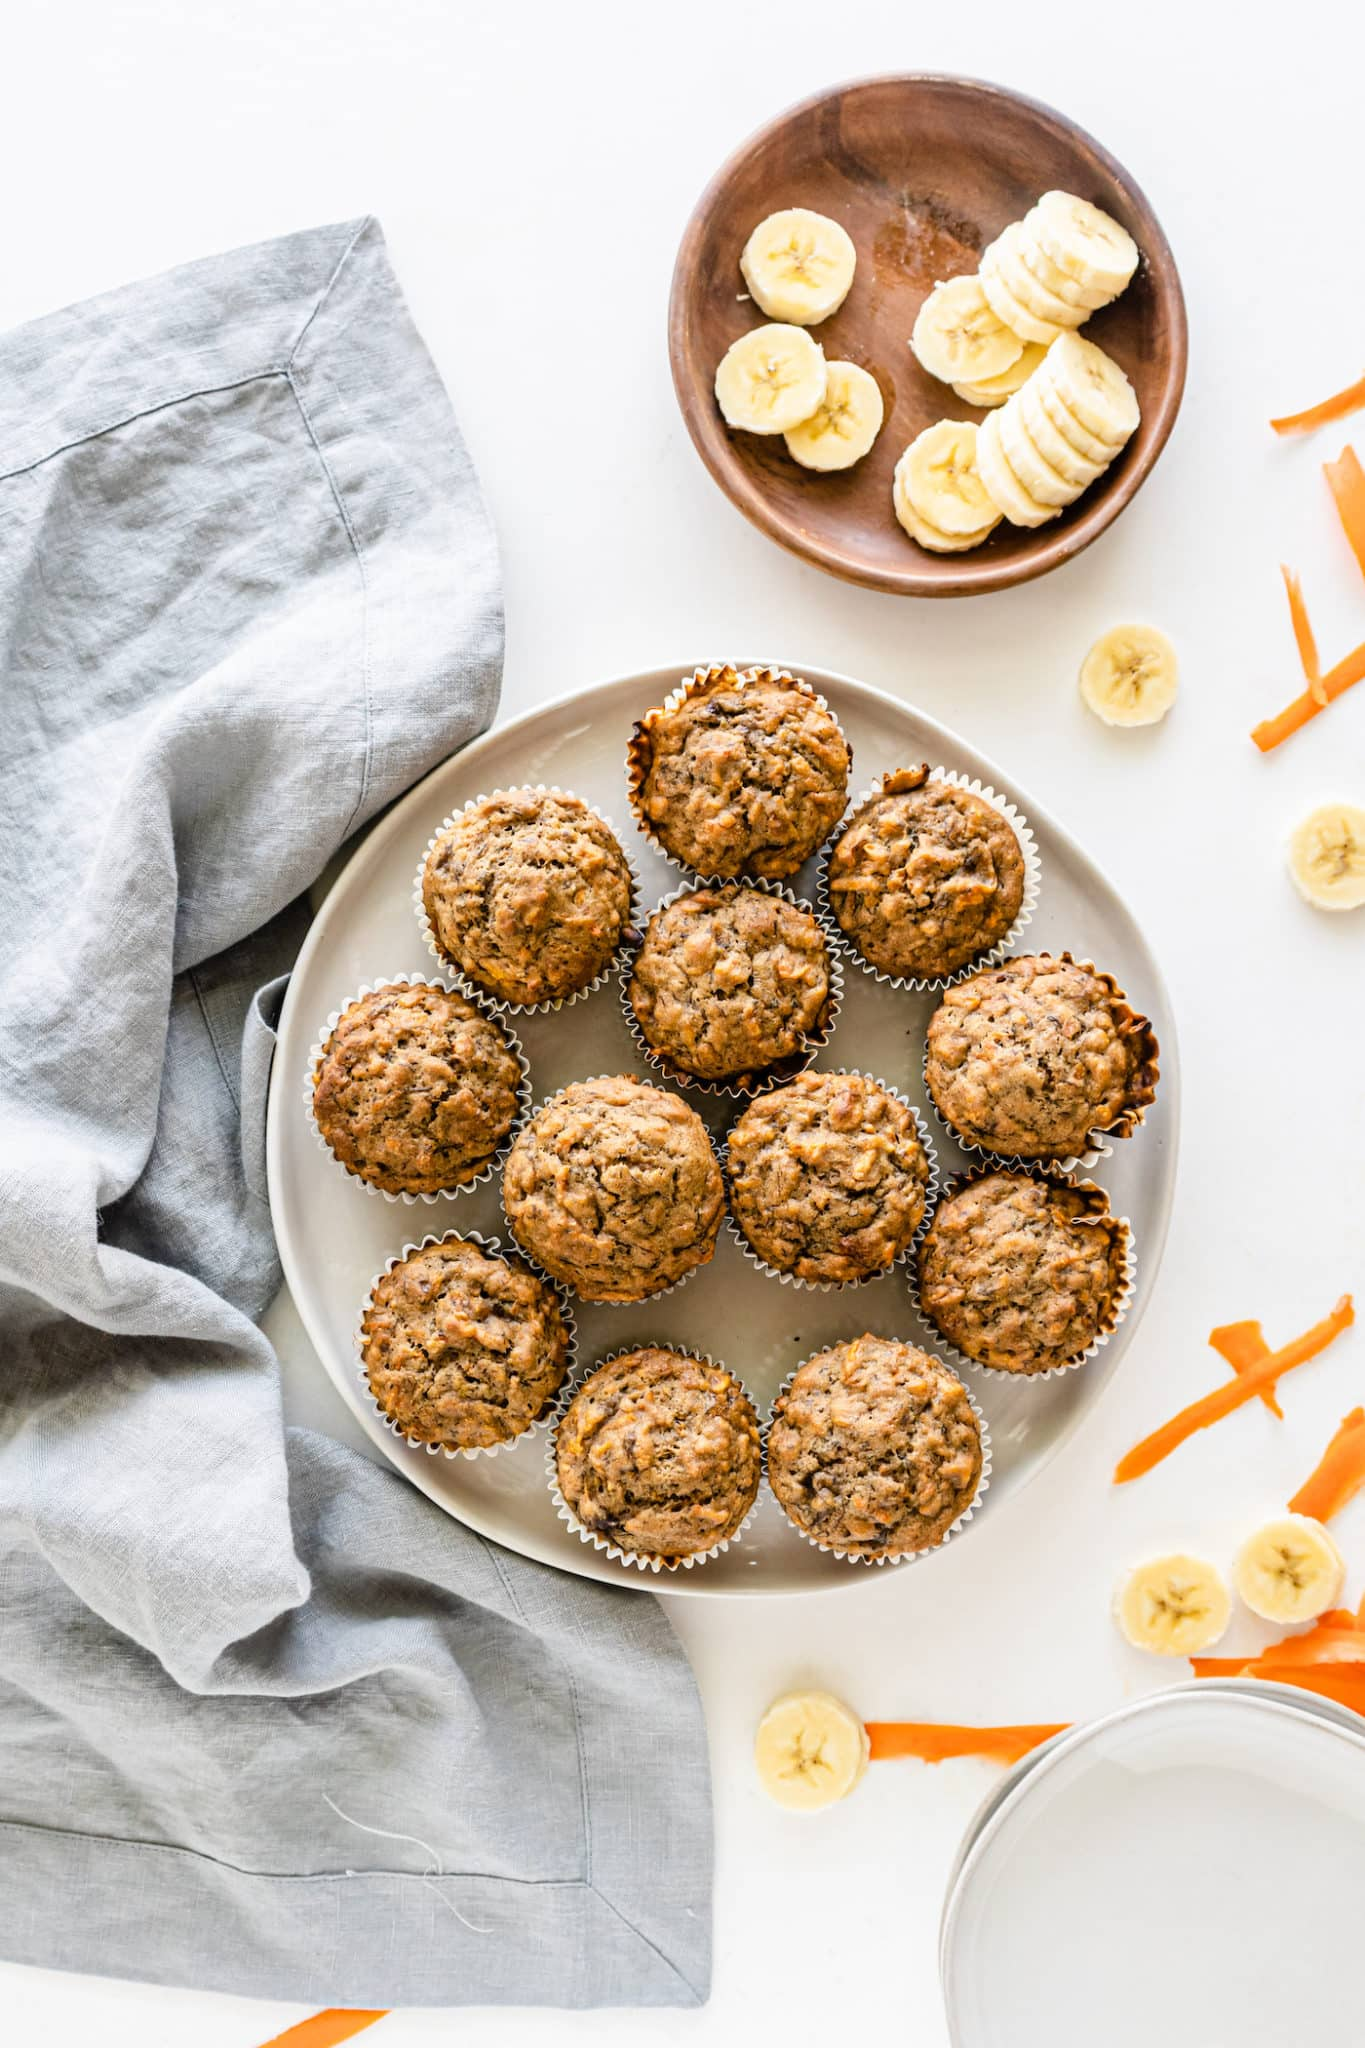 a plate of banana muffins